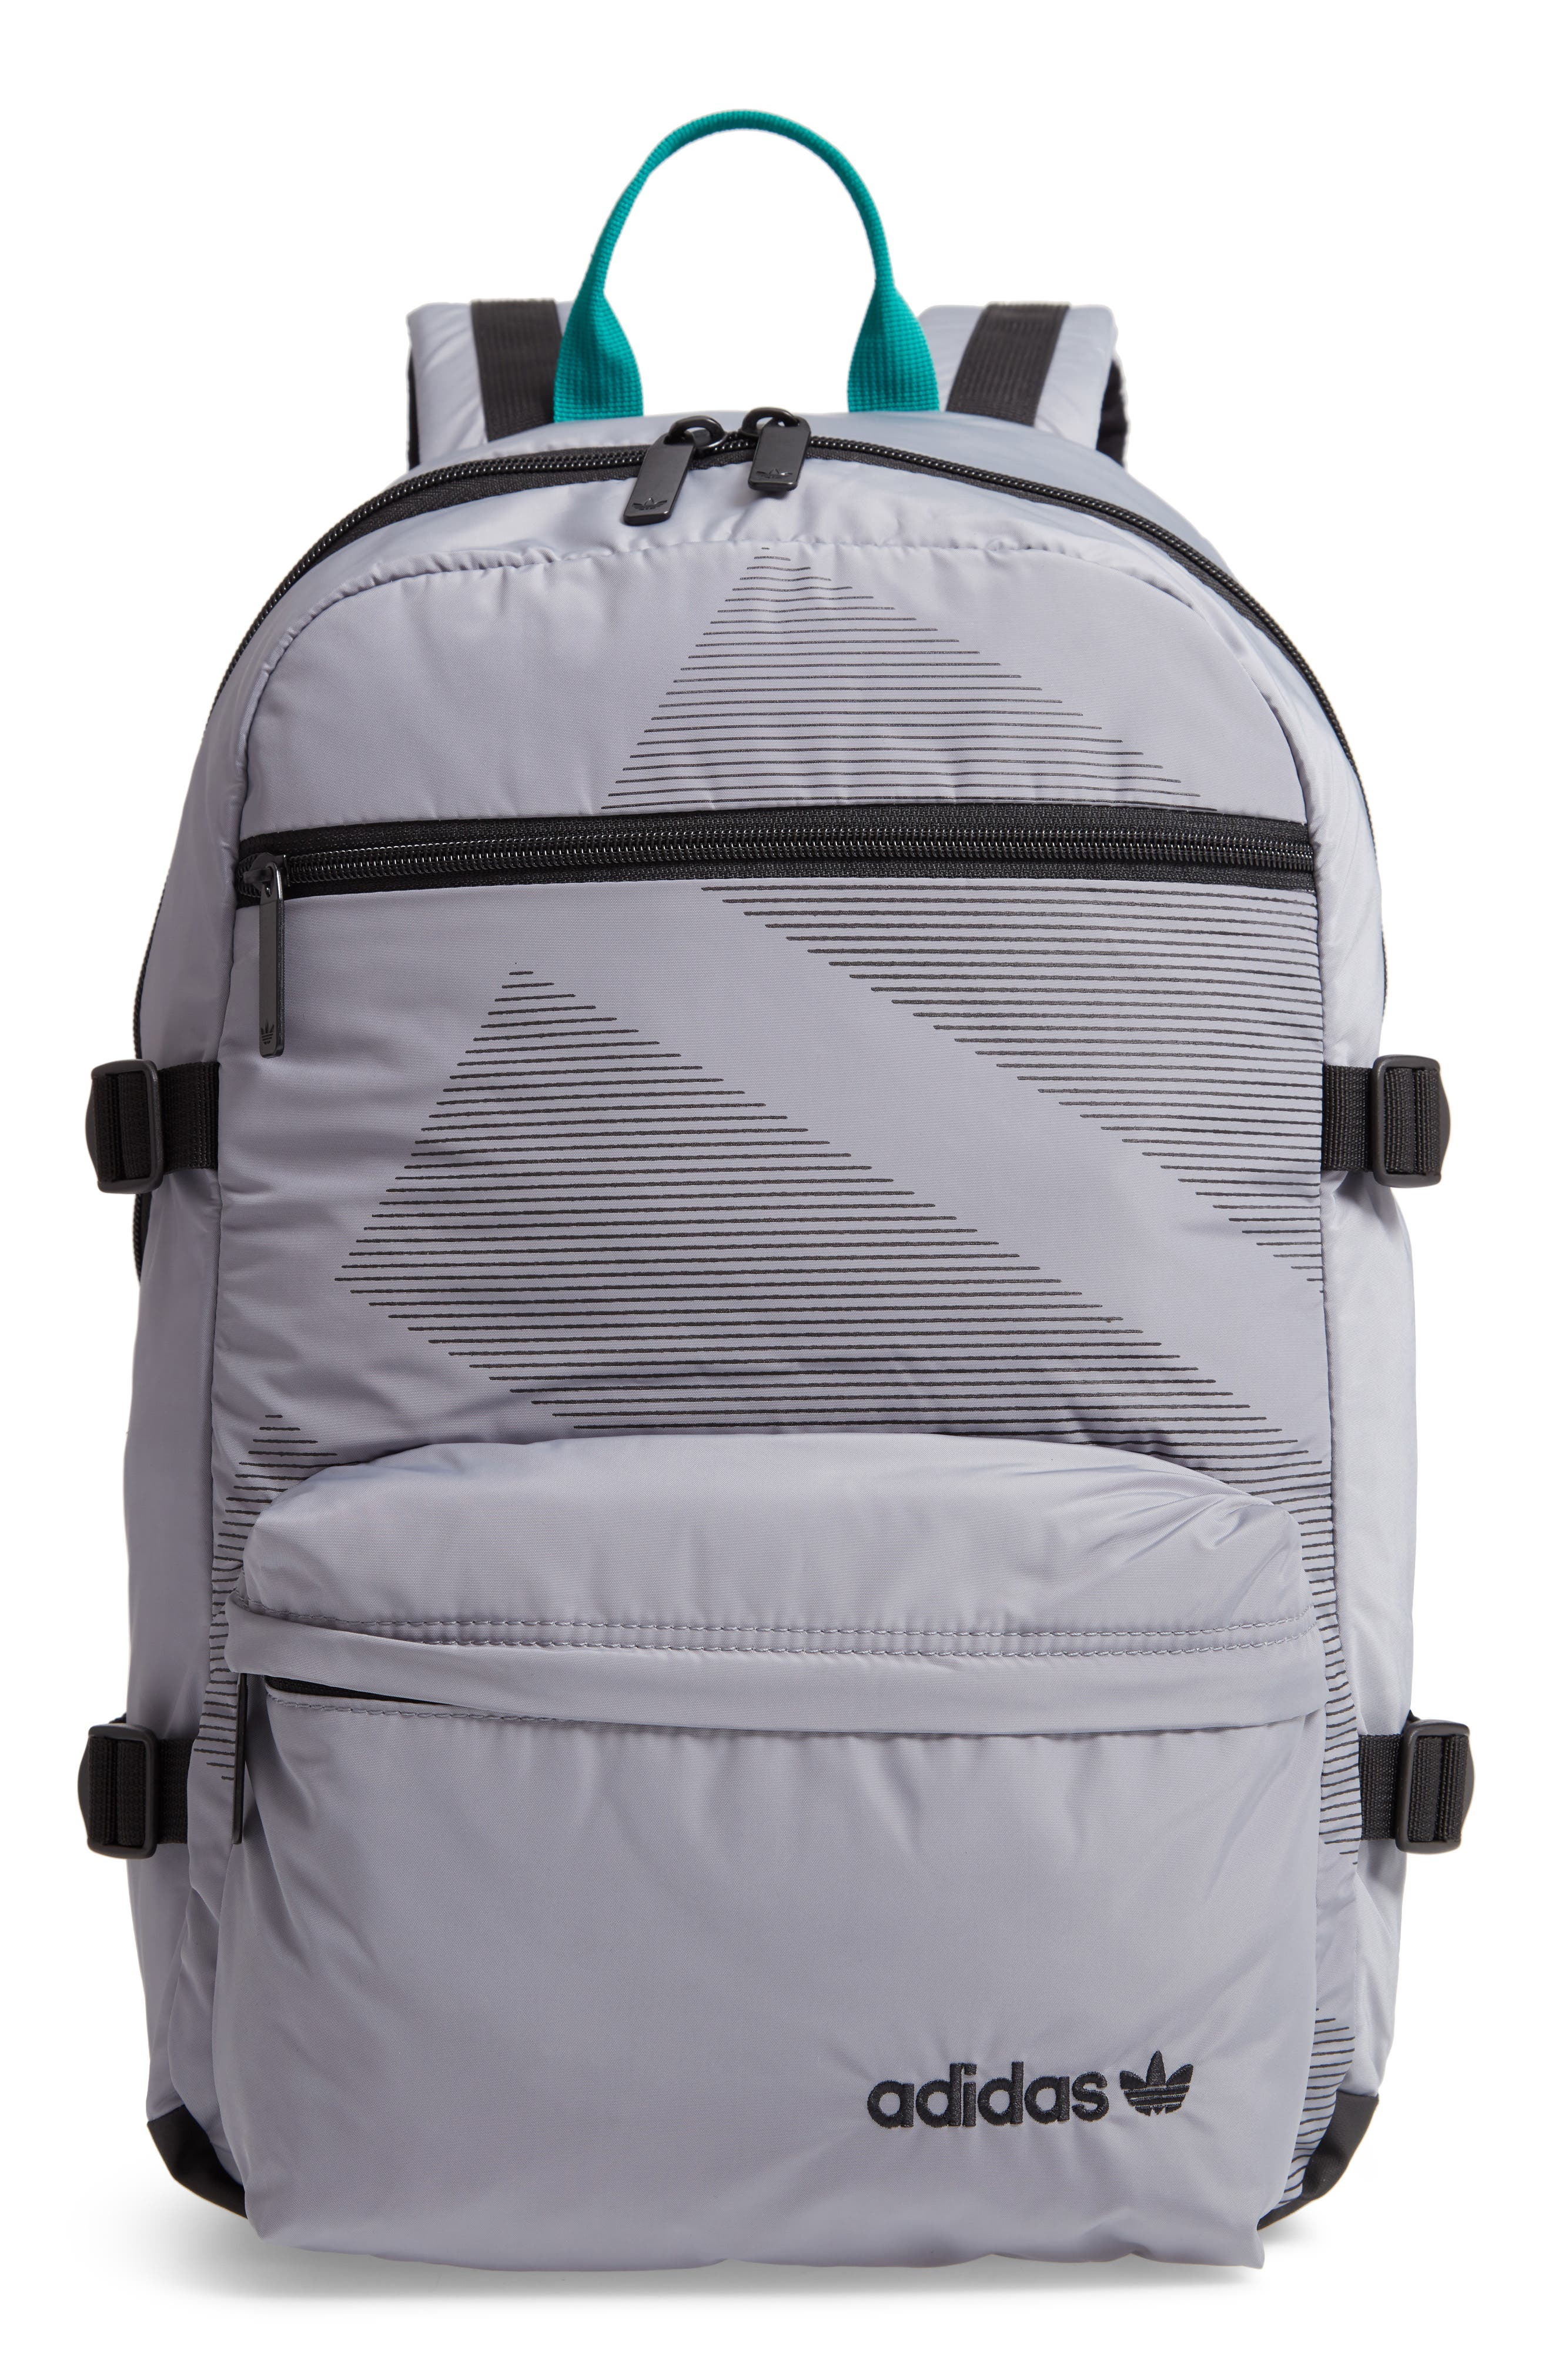 Adidas Originals Eqt Backpack - Grey